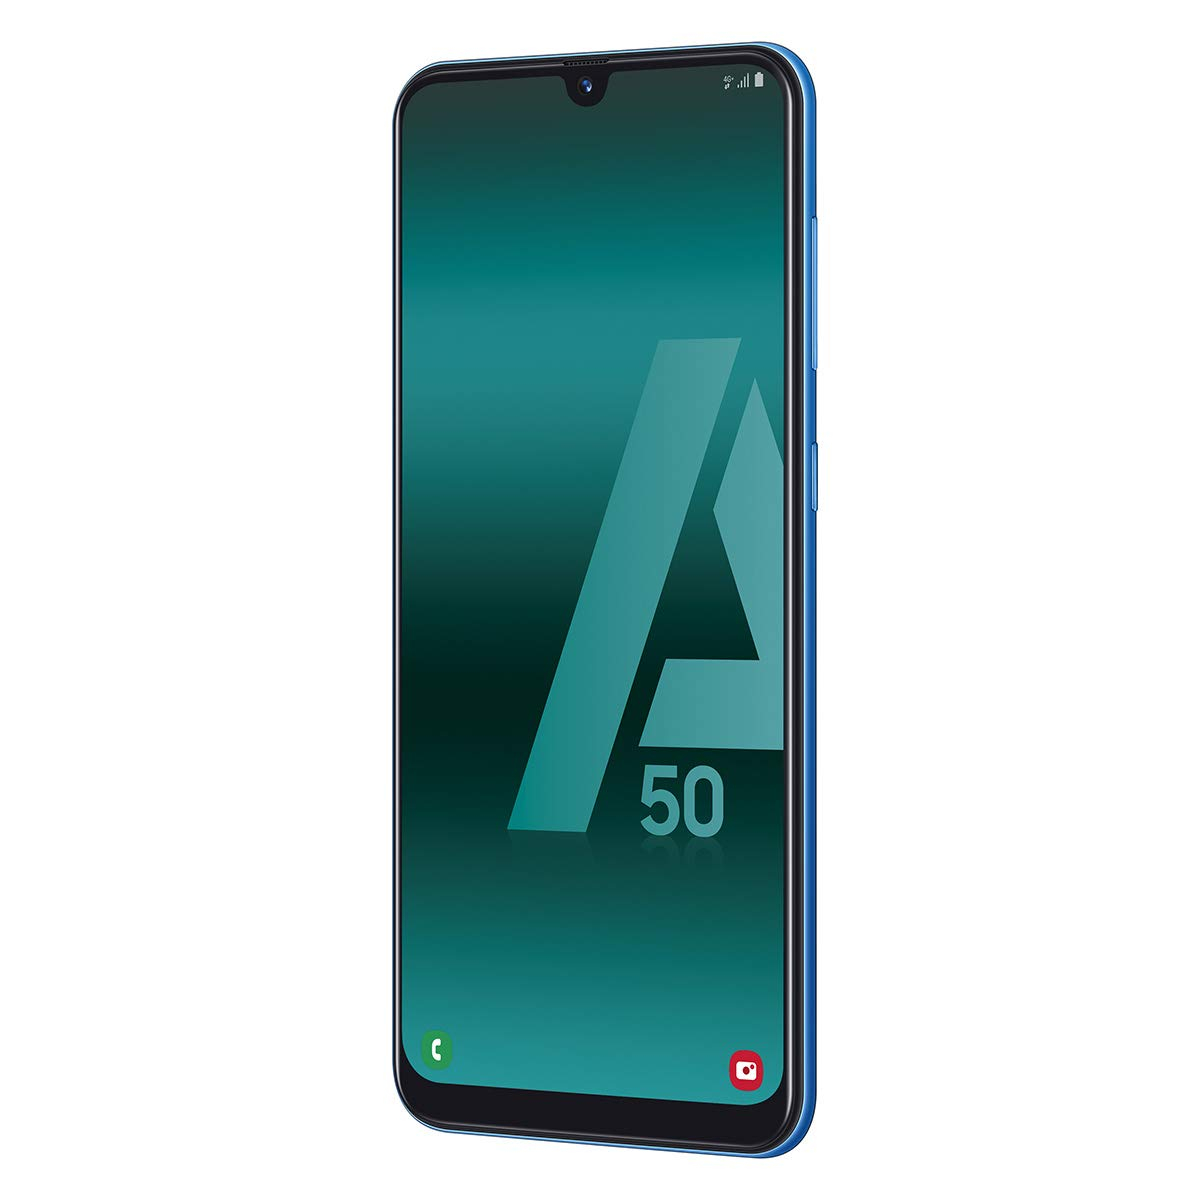 Samsung Galaxy A50, Color Blue (Blue), Dual SIM, 128 GB Rom, 4GB Ram, Screen 6.4